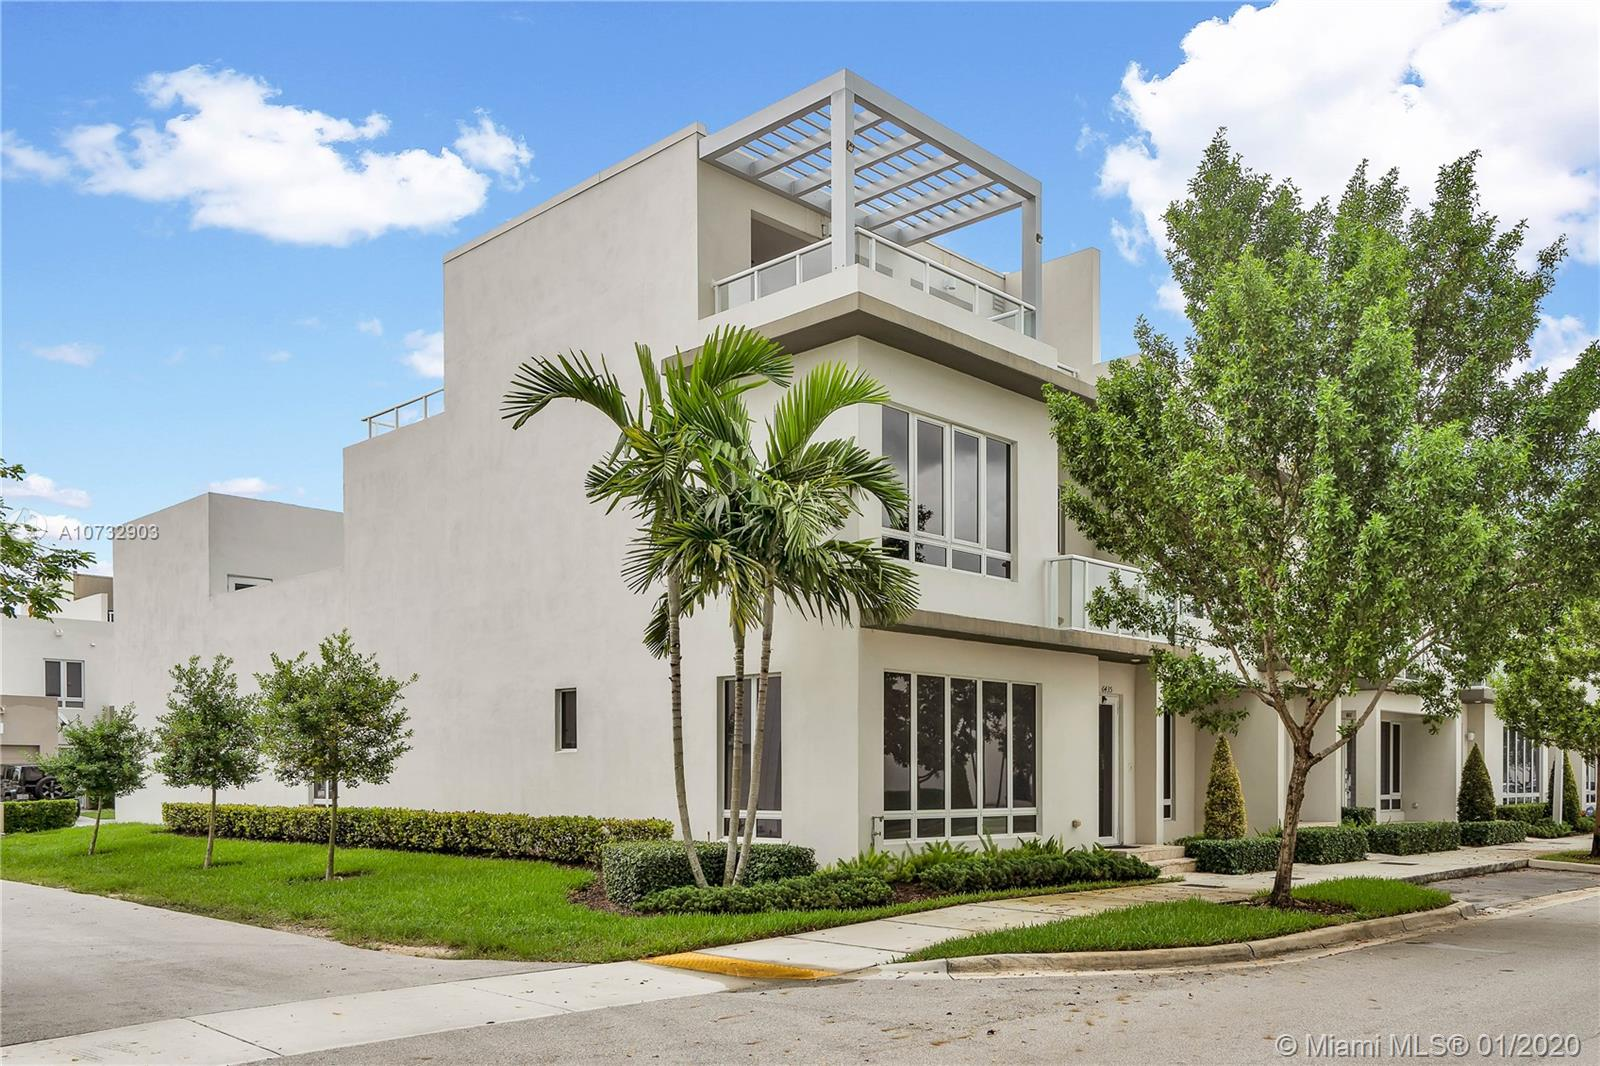 6435 NW 105th Ct, Doral, Florida